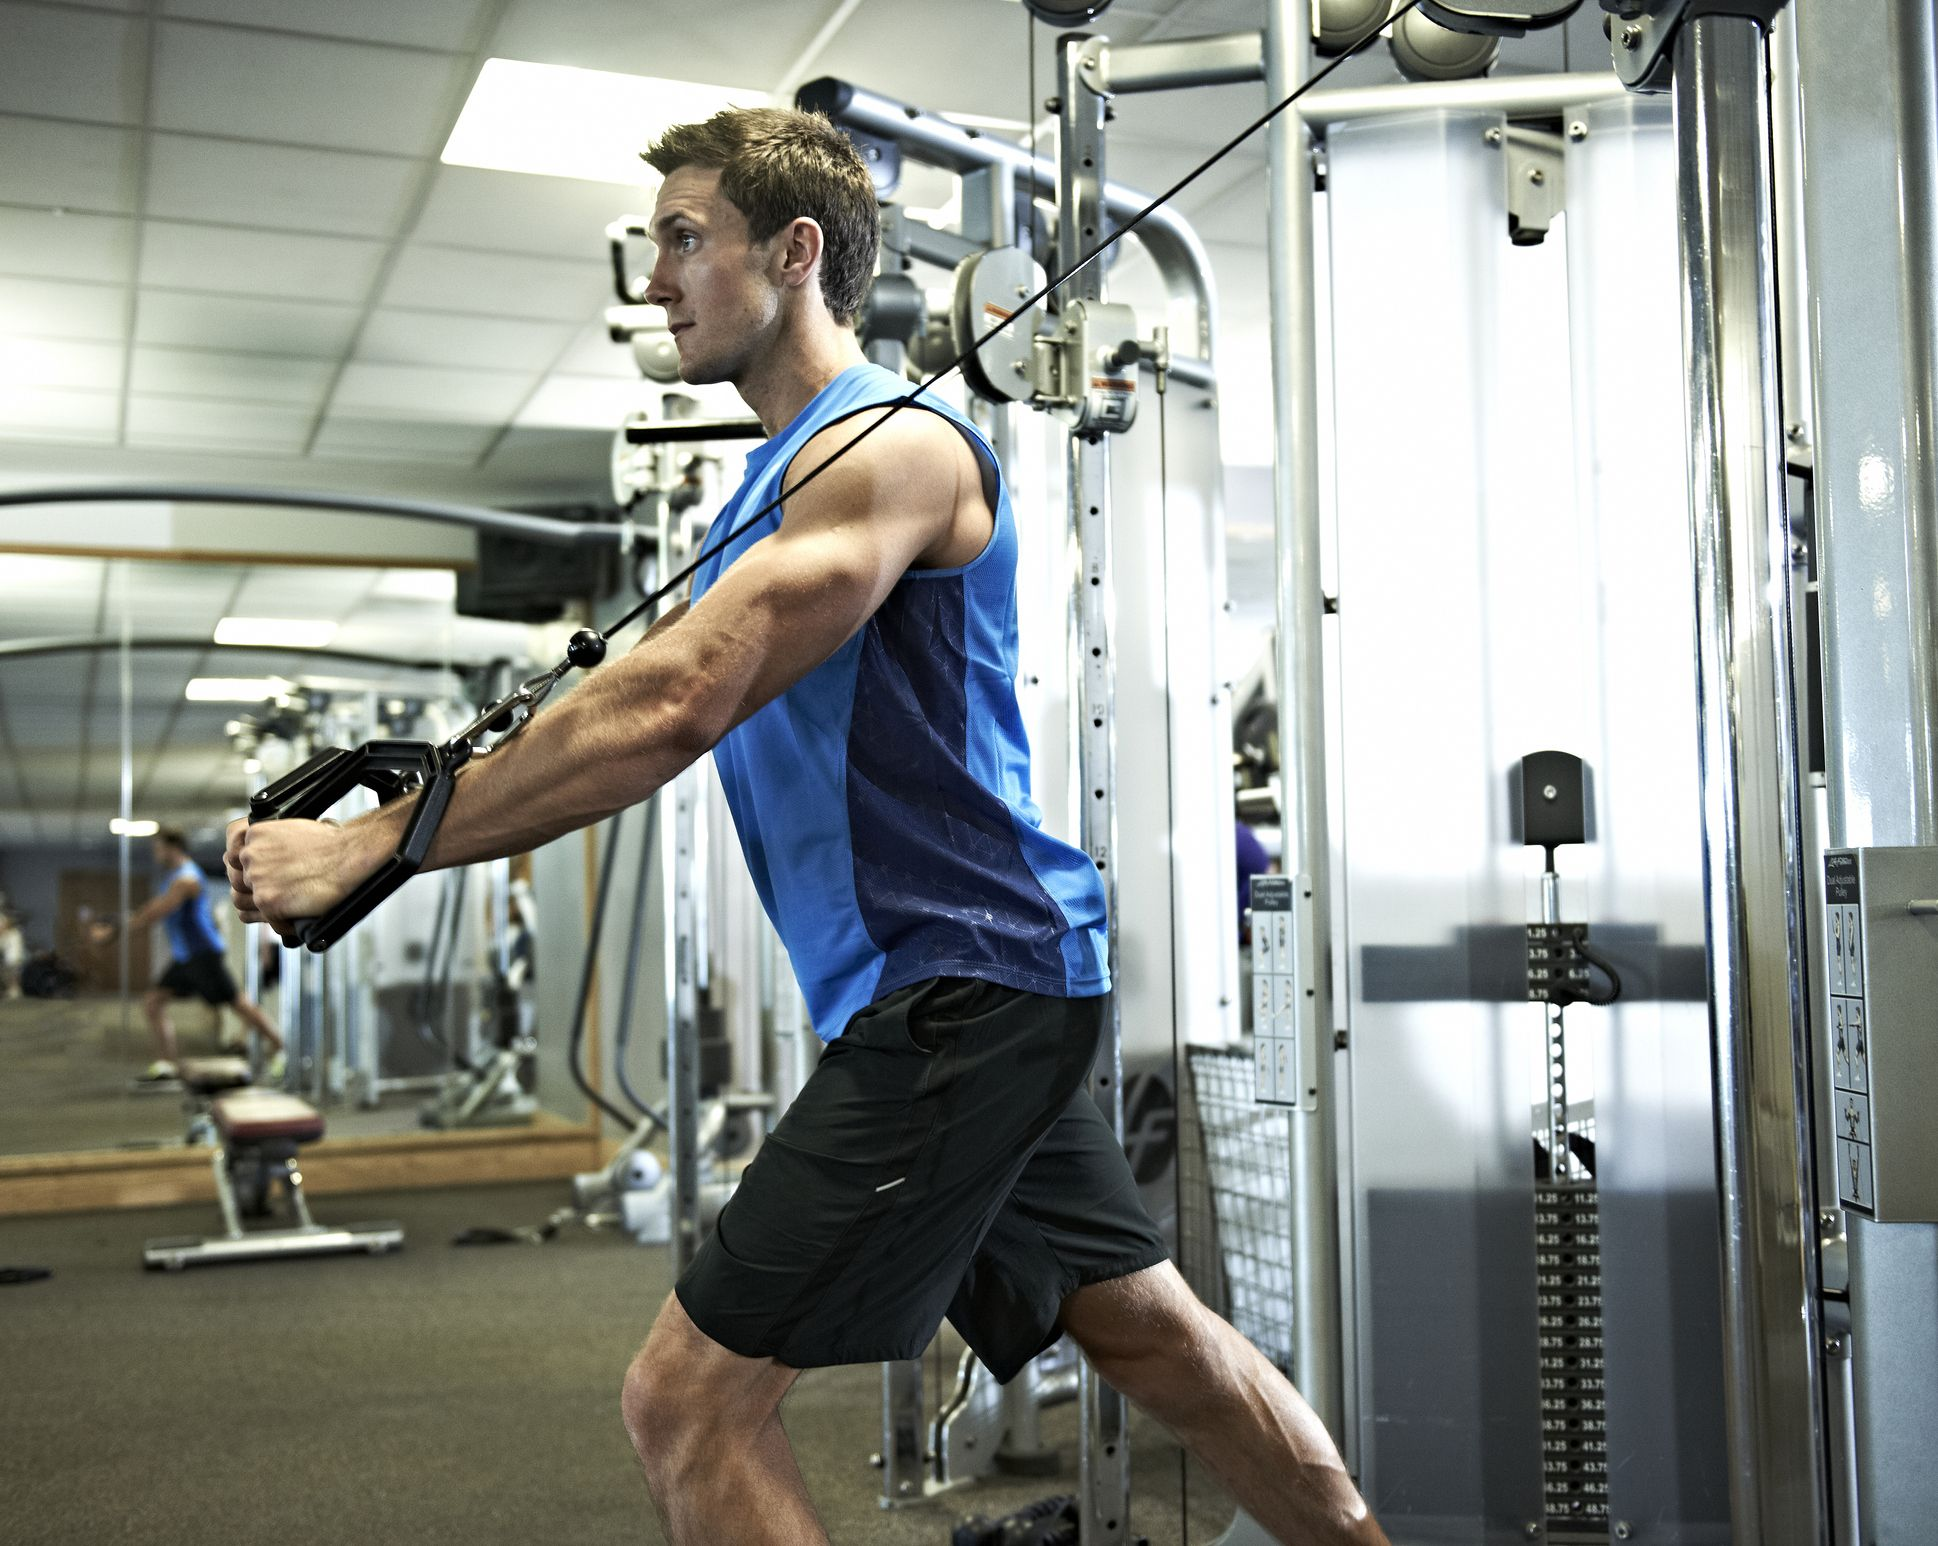 7 Core-Crushing Moves You Can Do at the Gym